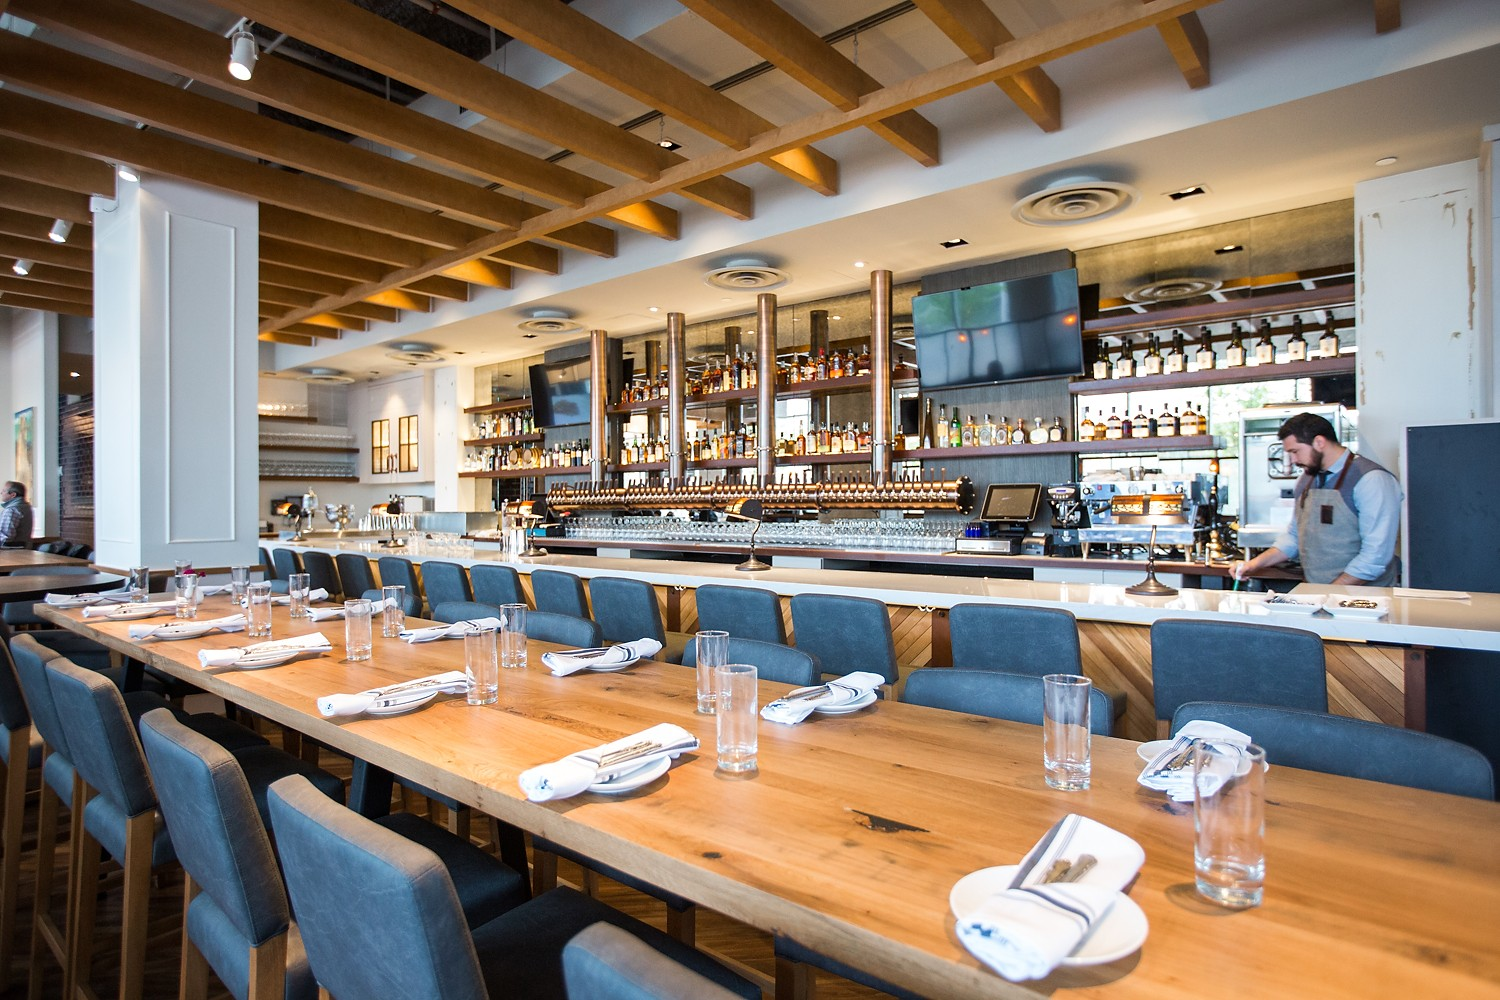 Tupelo Honey Southern Kitchen & Bar - Denver event space in denver